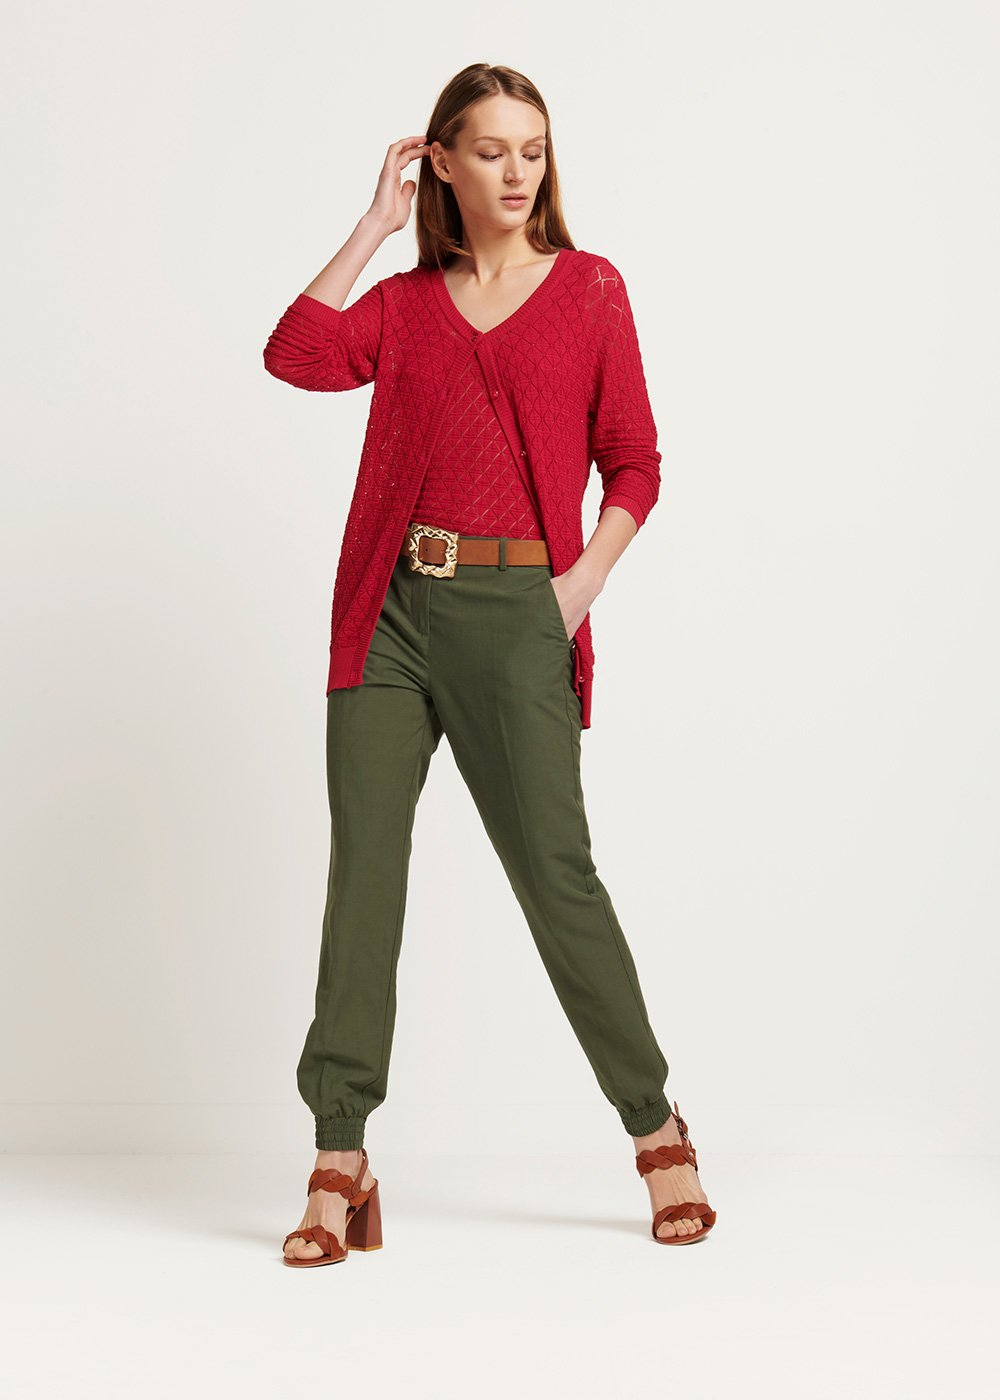 Tracey cotton yarn twin set with round neck - Cherry - Woman